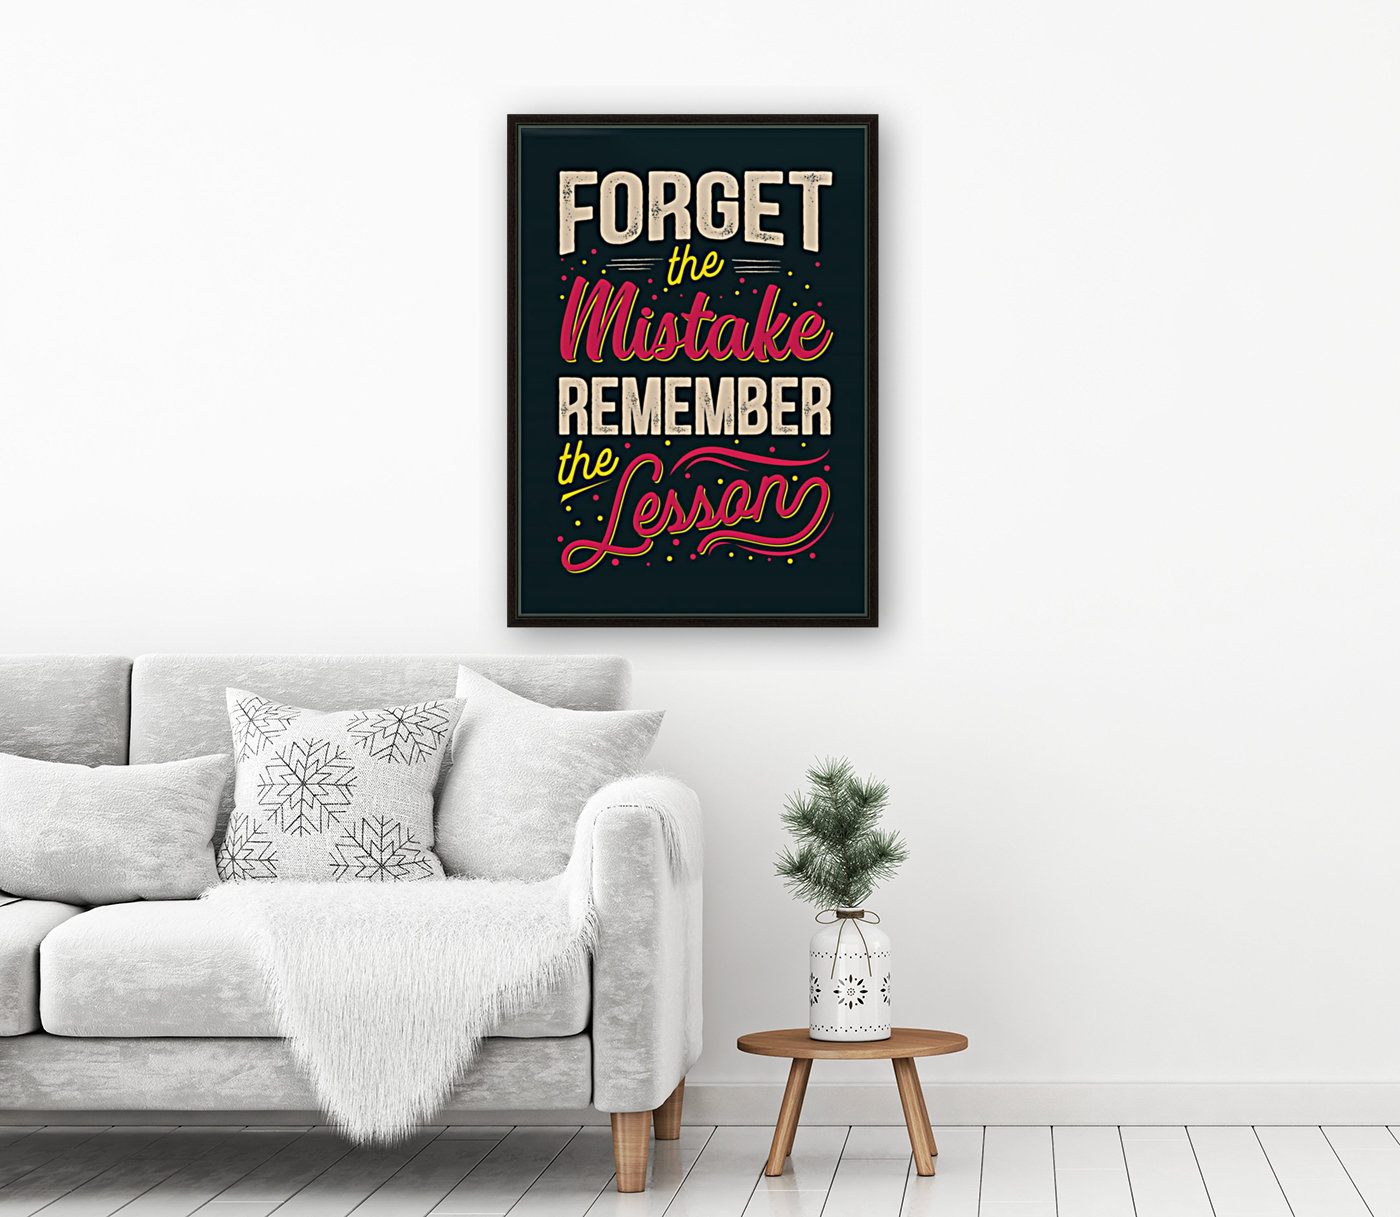 Best inspirational wisdom quotes life forget mistake remember lesson poster  Art